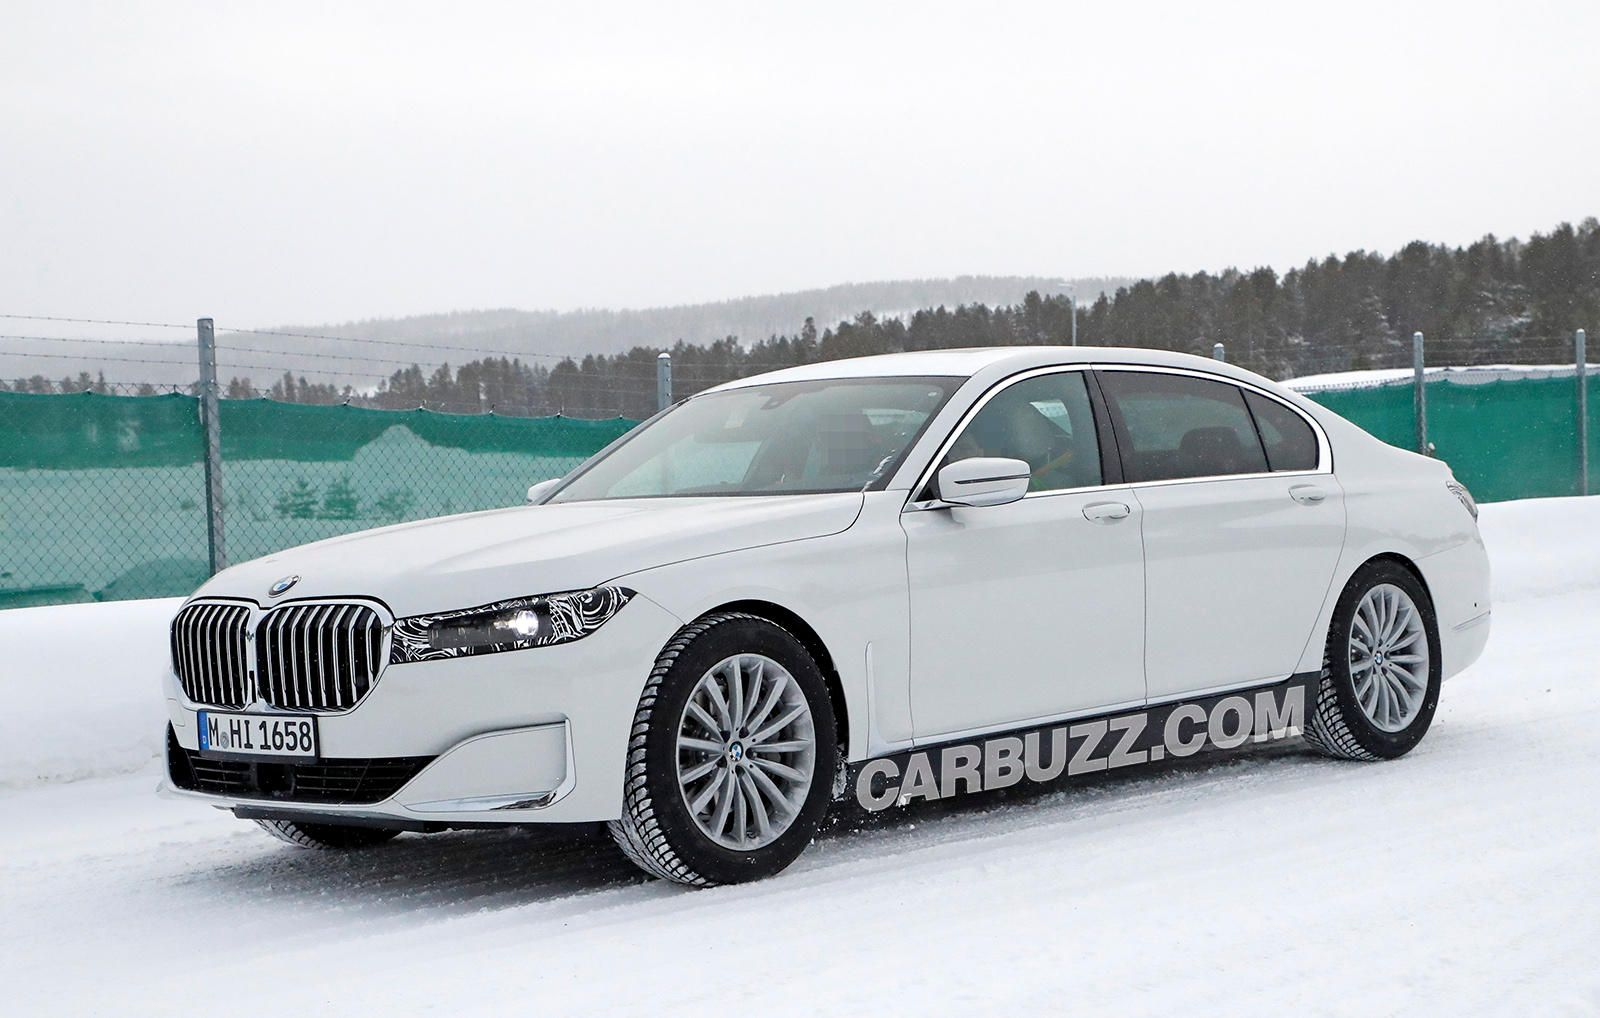 Here's An Early Look At The New BMW 7 Series. Here's an